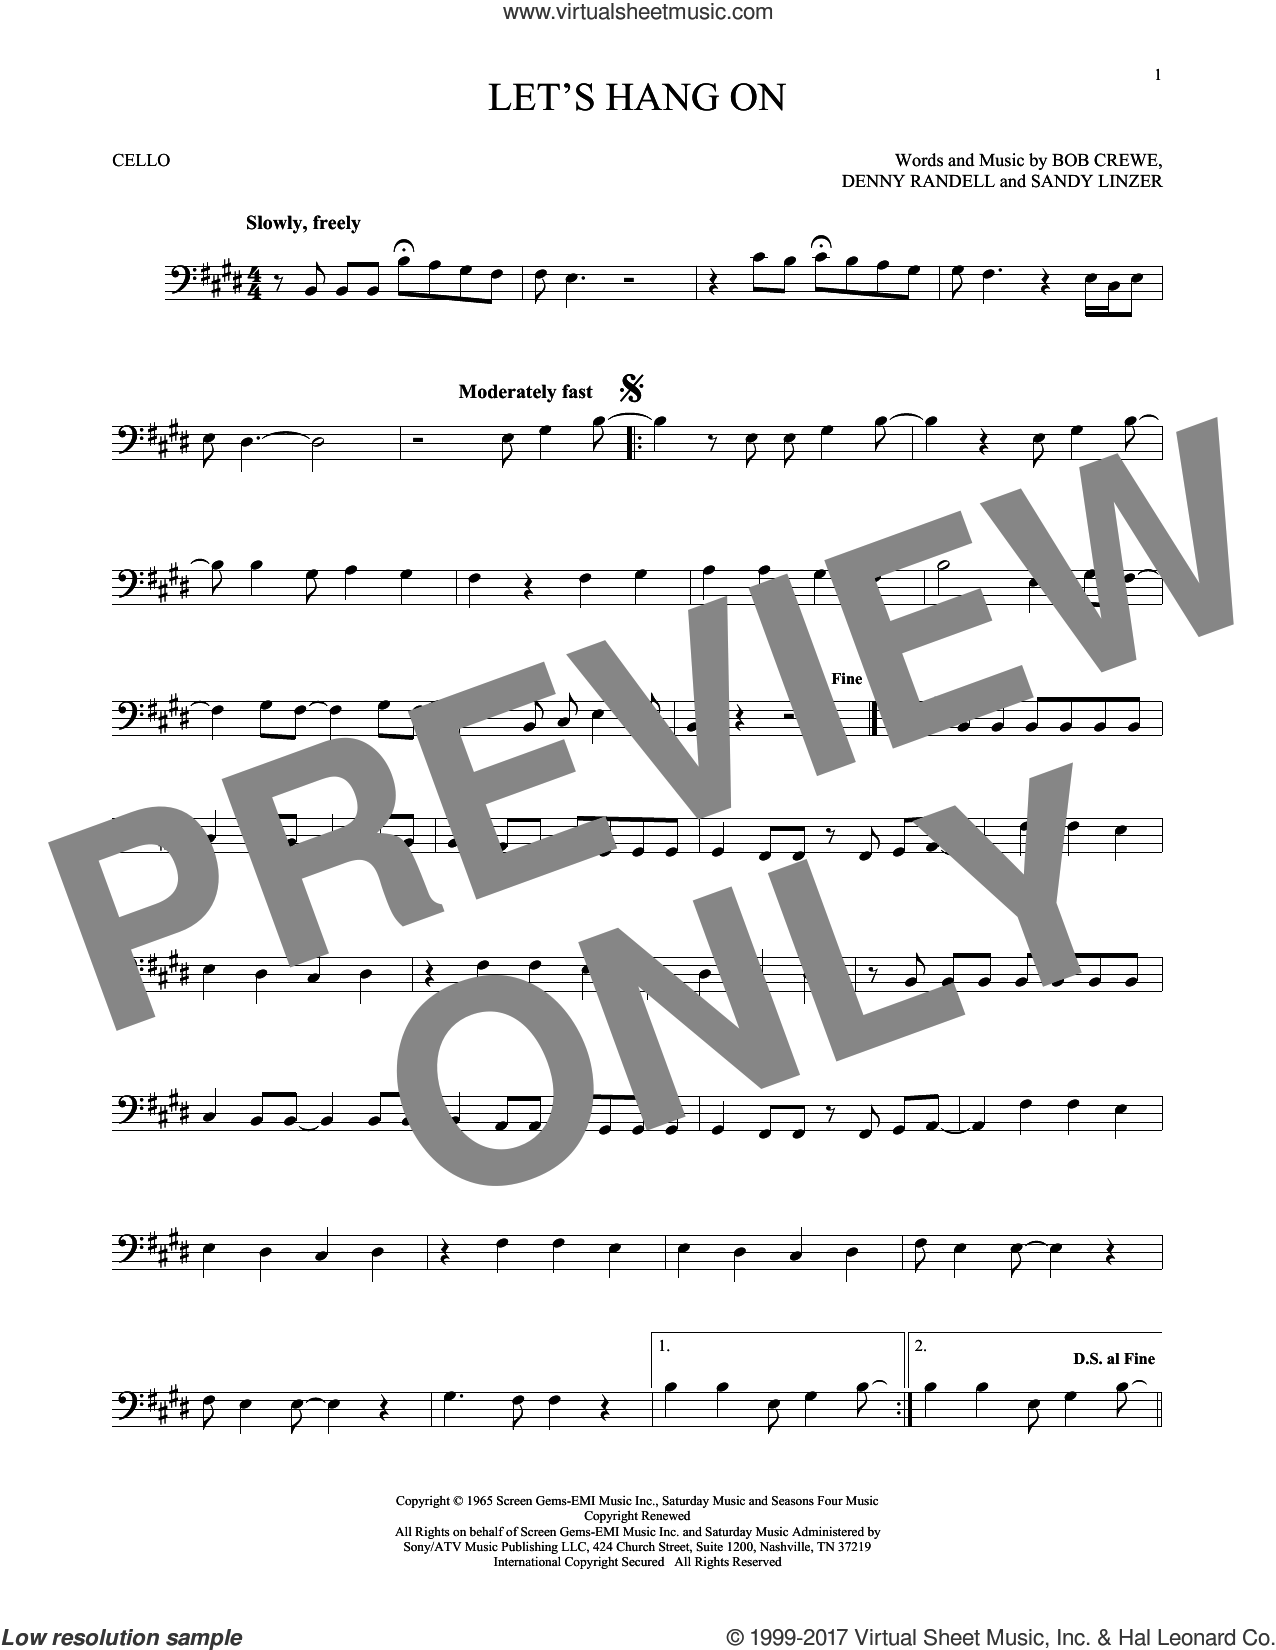 Let's Hang On sheet music for cello solo by The 4 Seasons, Manhattan Transfer, Bob Crewe, Denny Randell and Sandy Linzer, intermediate skill level